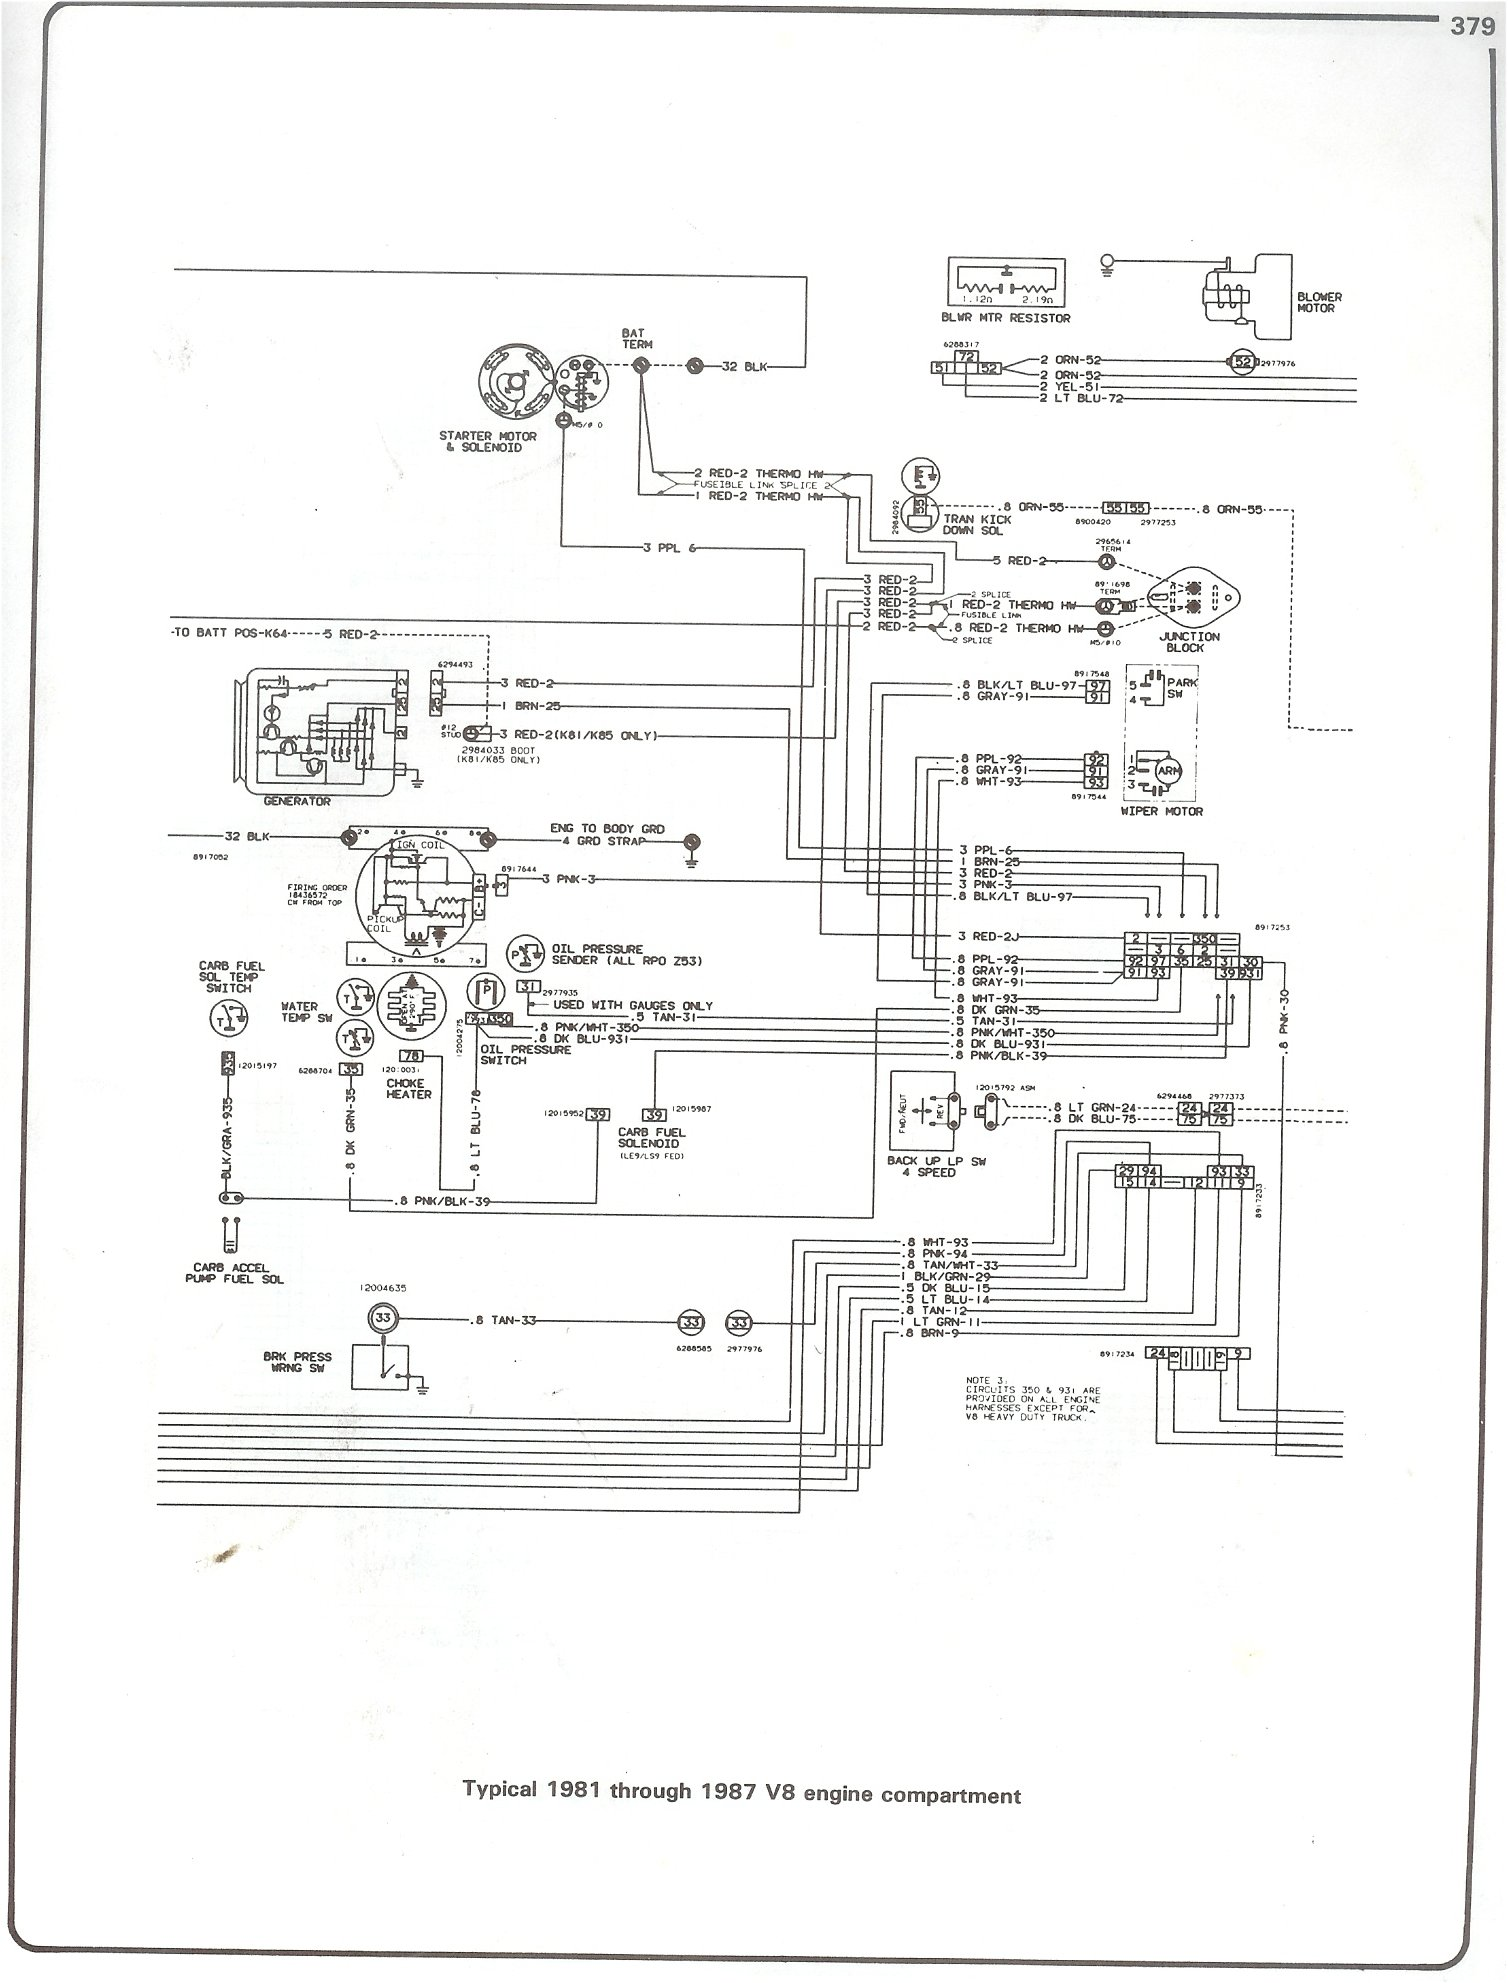 1978 chevrolet fuse box electrical wiring diagram guide 1957 Chevrolet Wiring Diagram